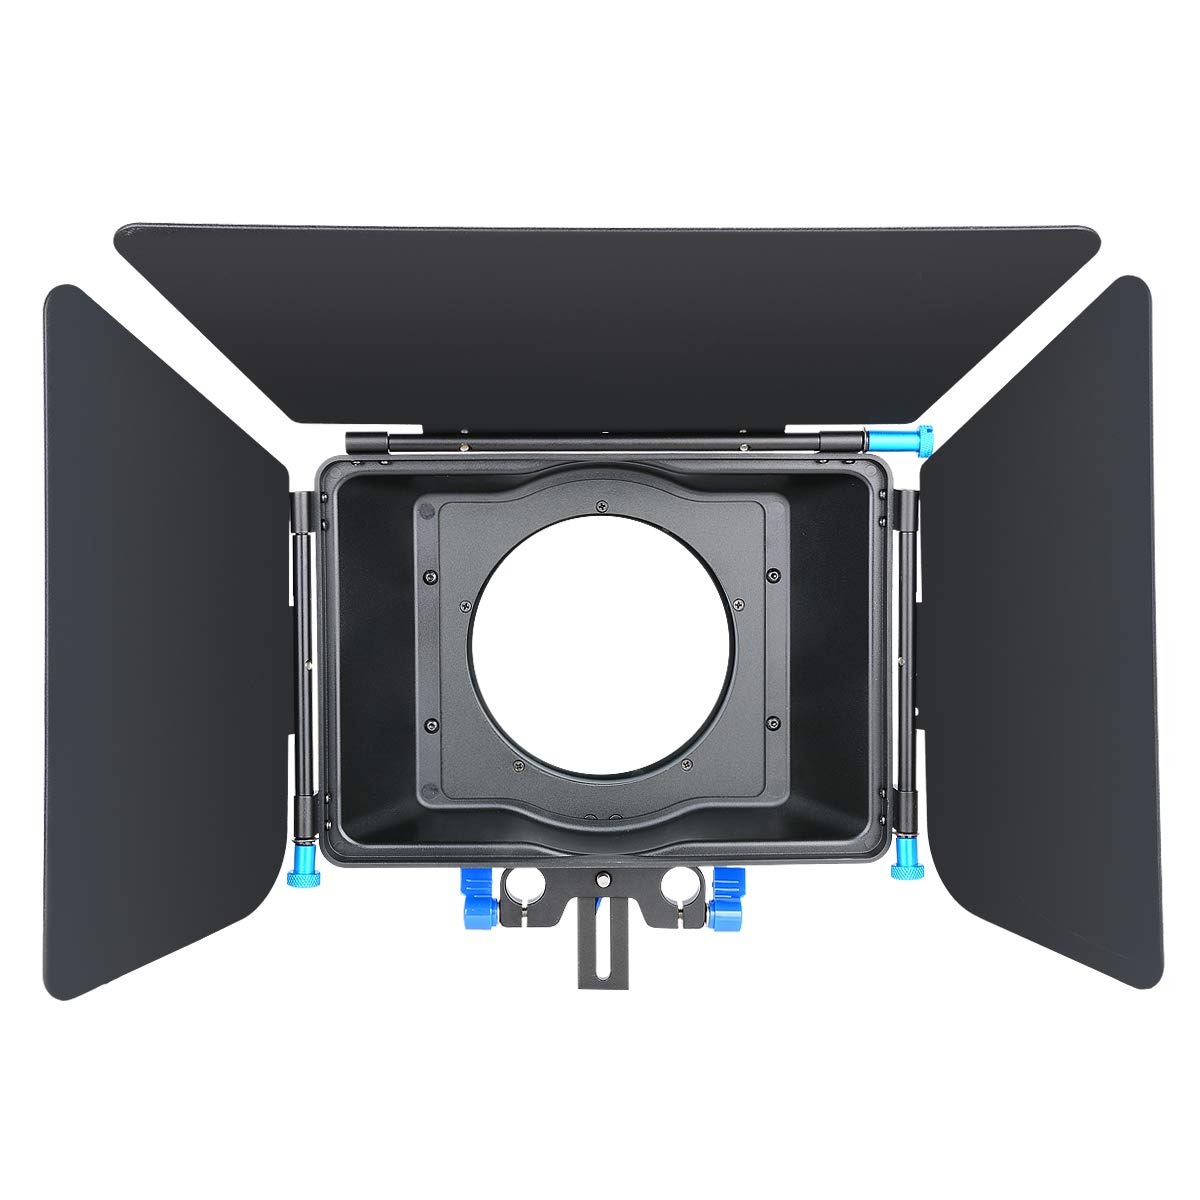 CINEPIECE Pro DSLR Digital Matte Box Sunshade for Follow Focus System 15mm Rail Rod Rig,Movie Kit Film Making System,Video,DSLR Camera Cages, Nikon, Canon,Sony,Camcorder, DVR, DV, Recorder by CINEPIECE